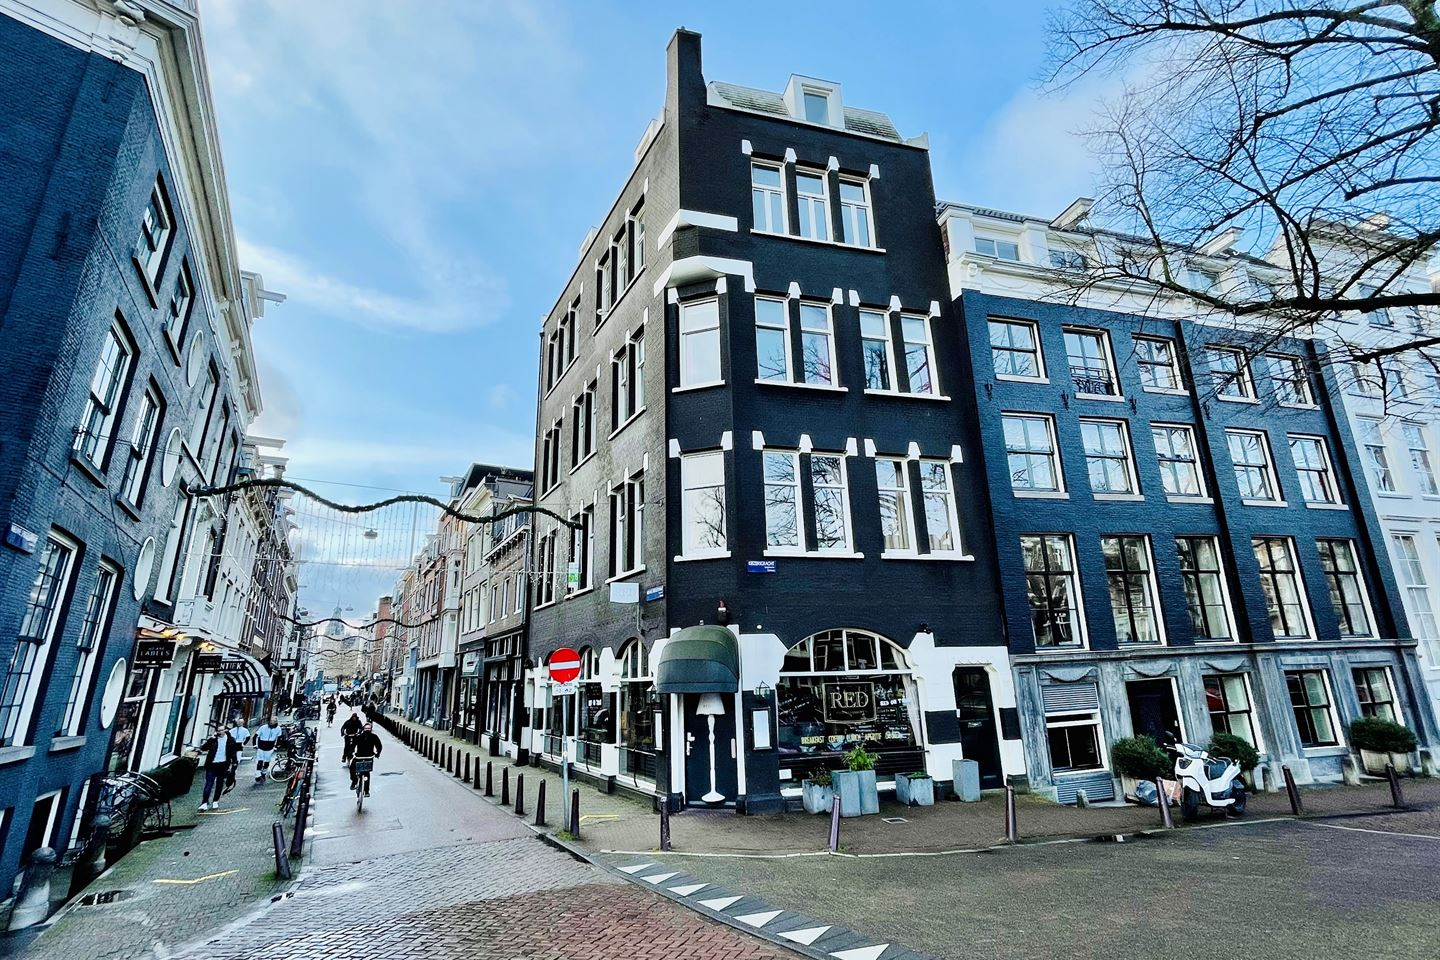 View photo 1 of Keizersgracht 592 -1